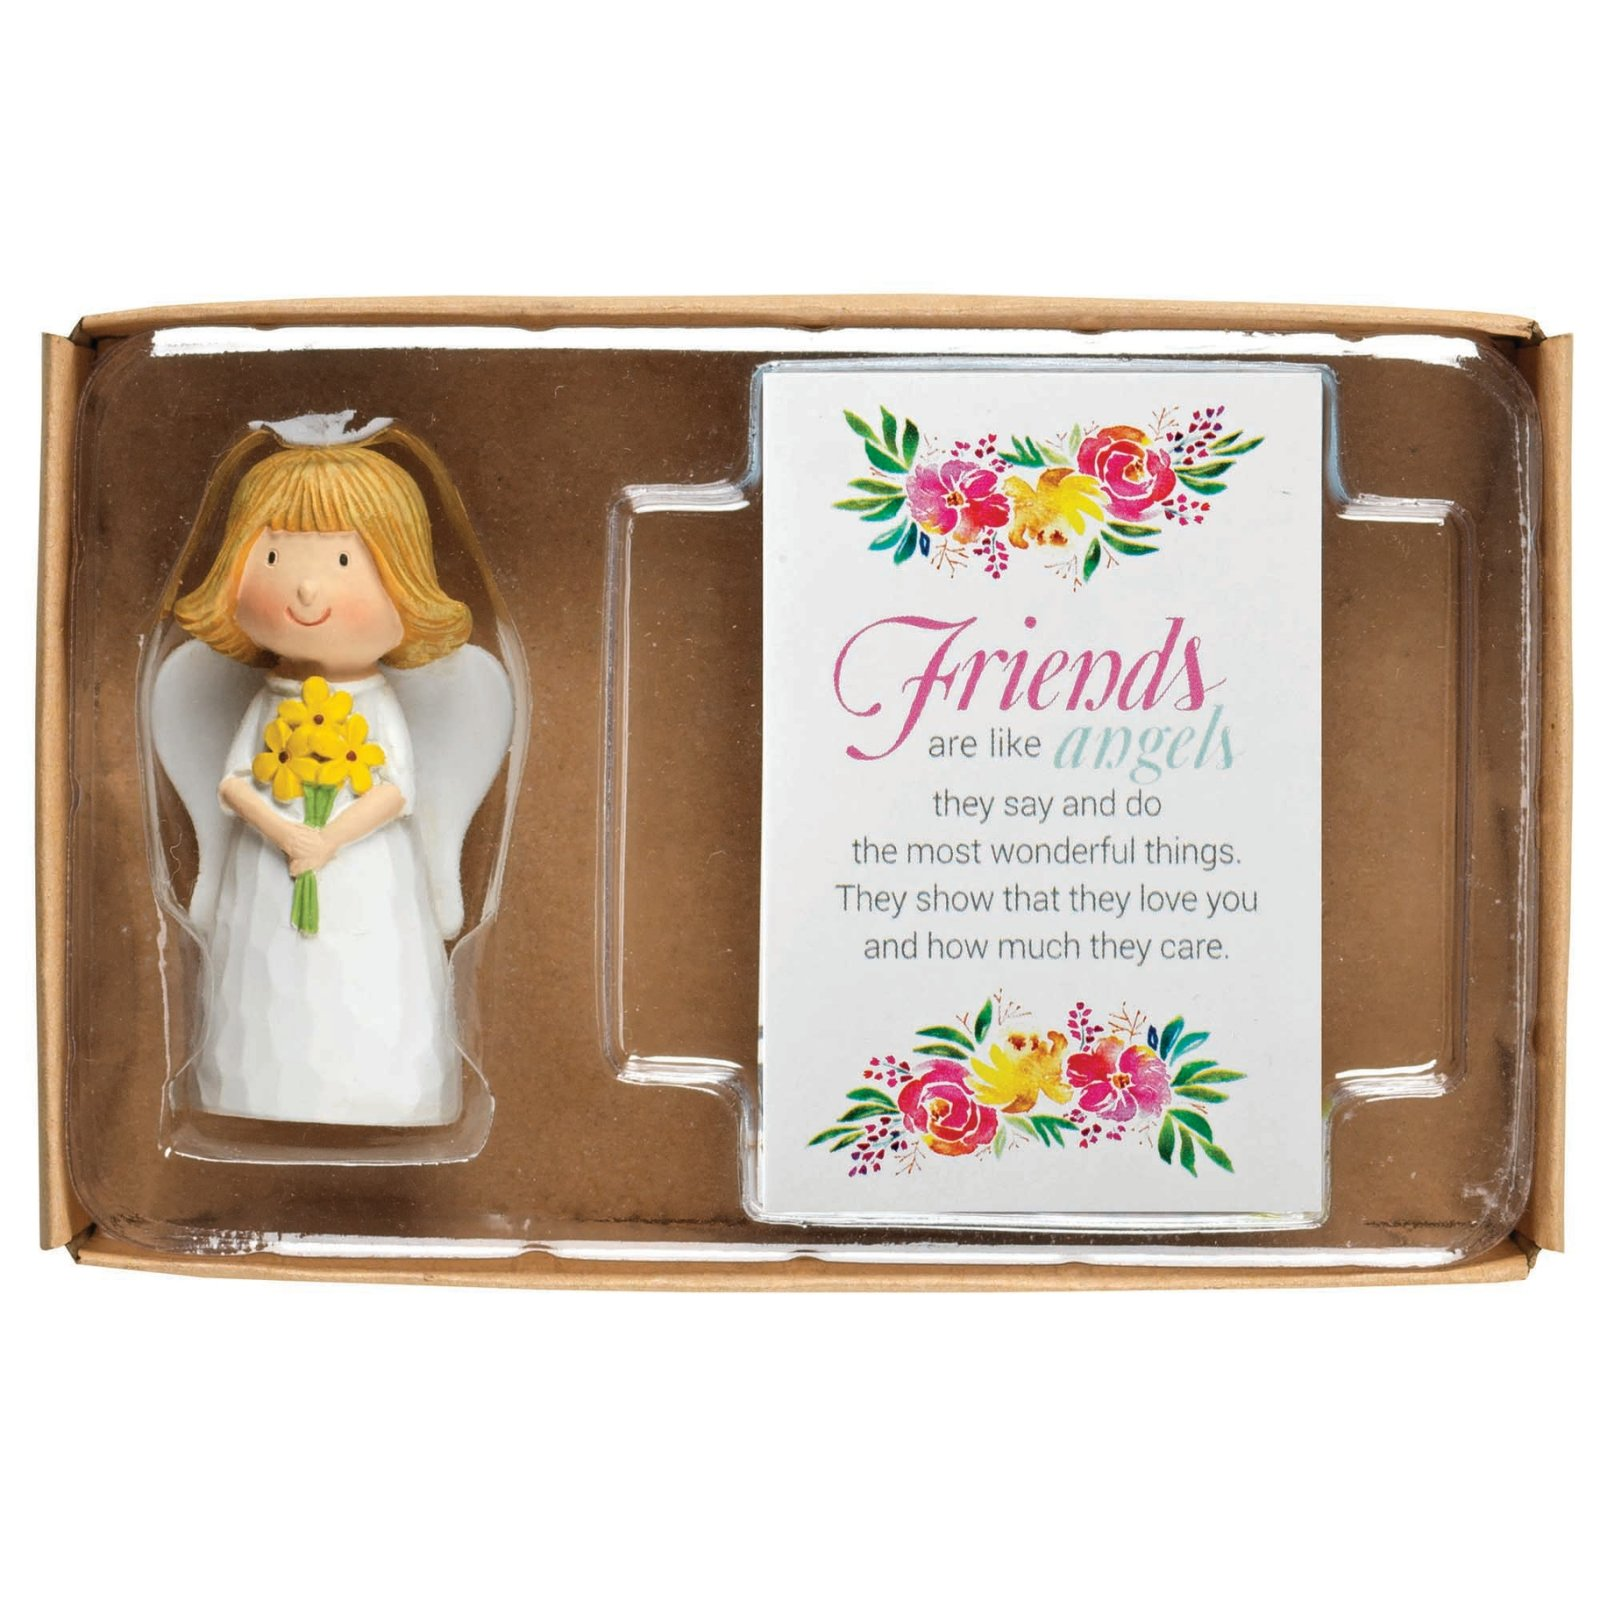 Angel Pray Crd Friends Are Like Angels Figurine and Card